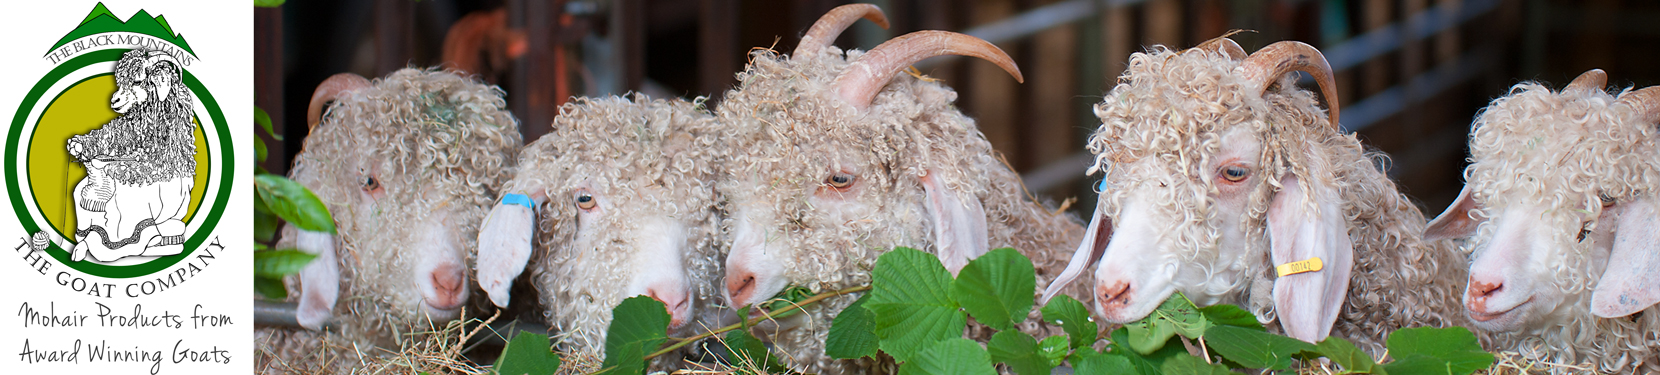 Sustainable Mohair products from The Goat Company